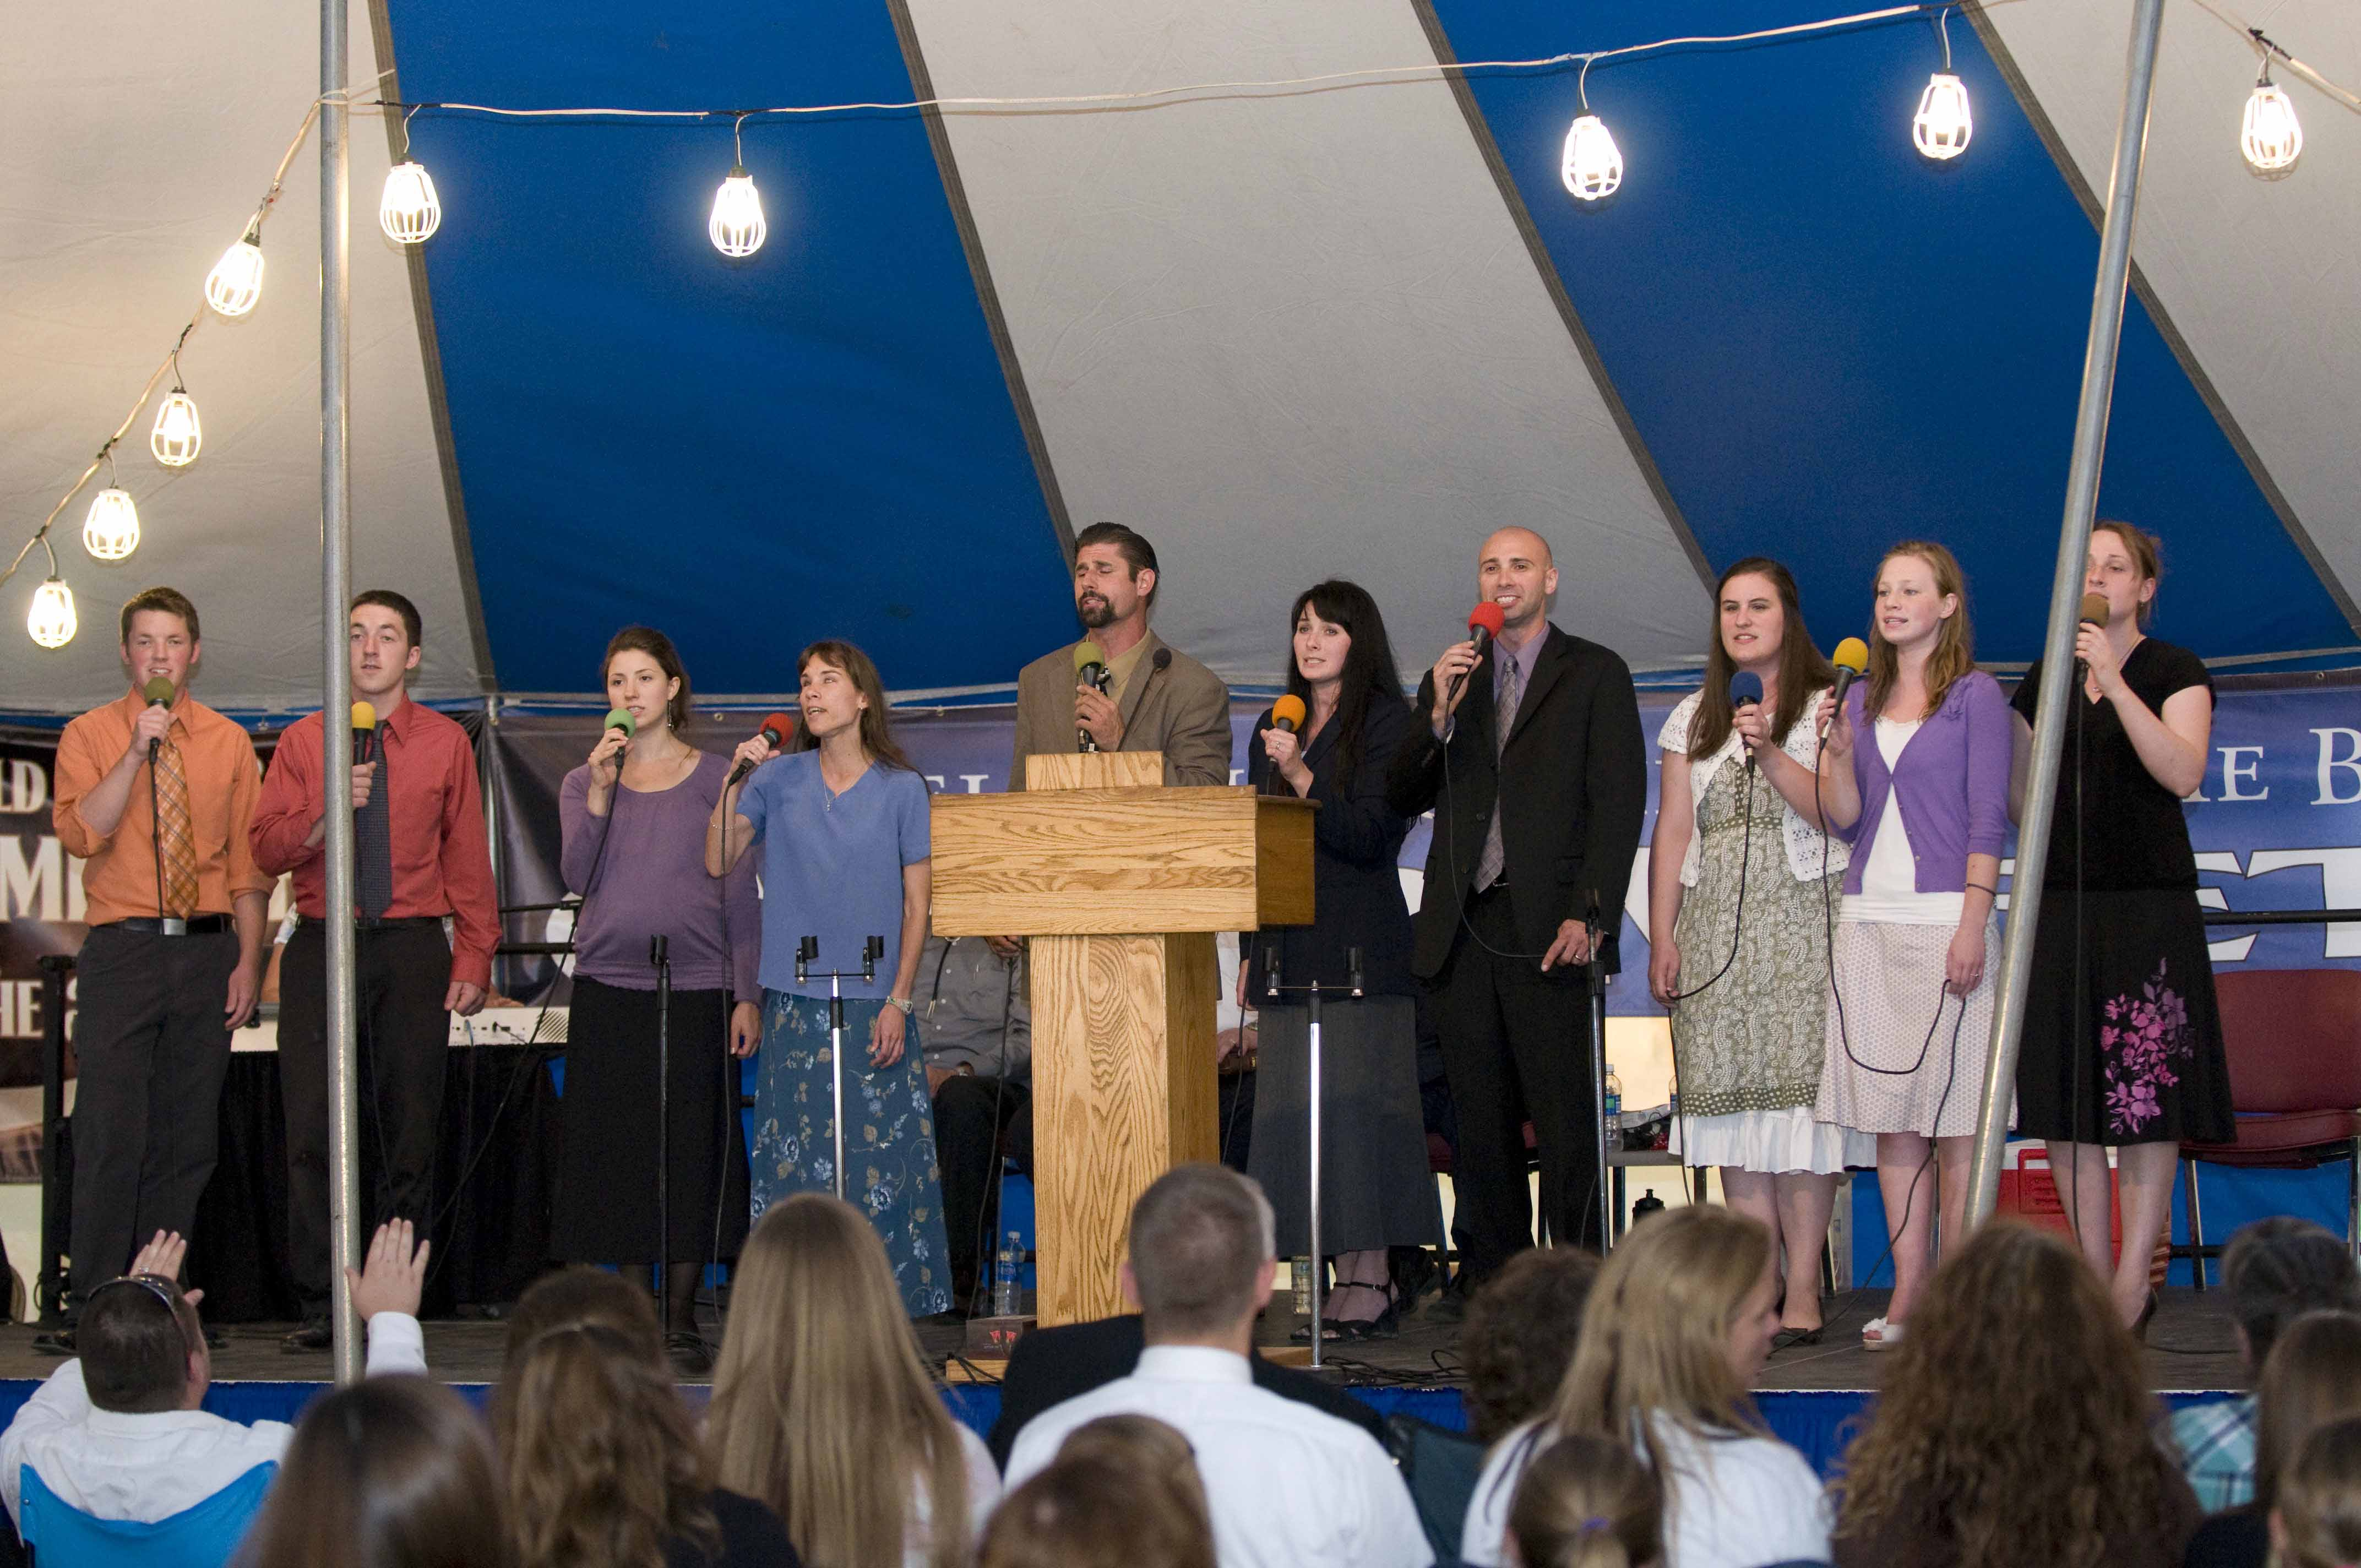 Camp_meeting_2011_133